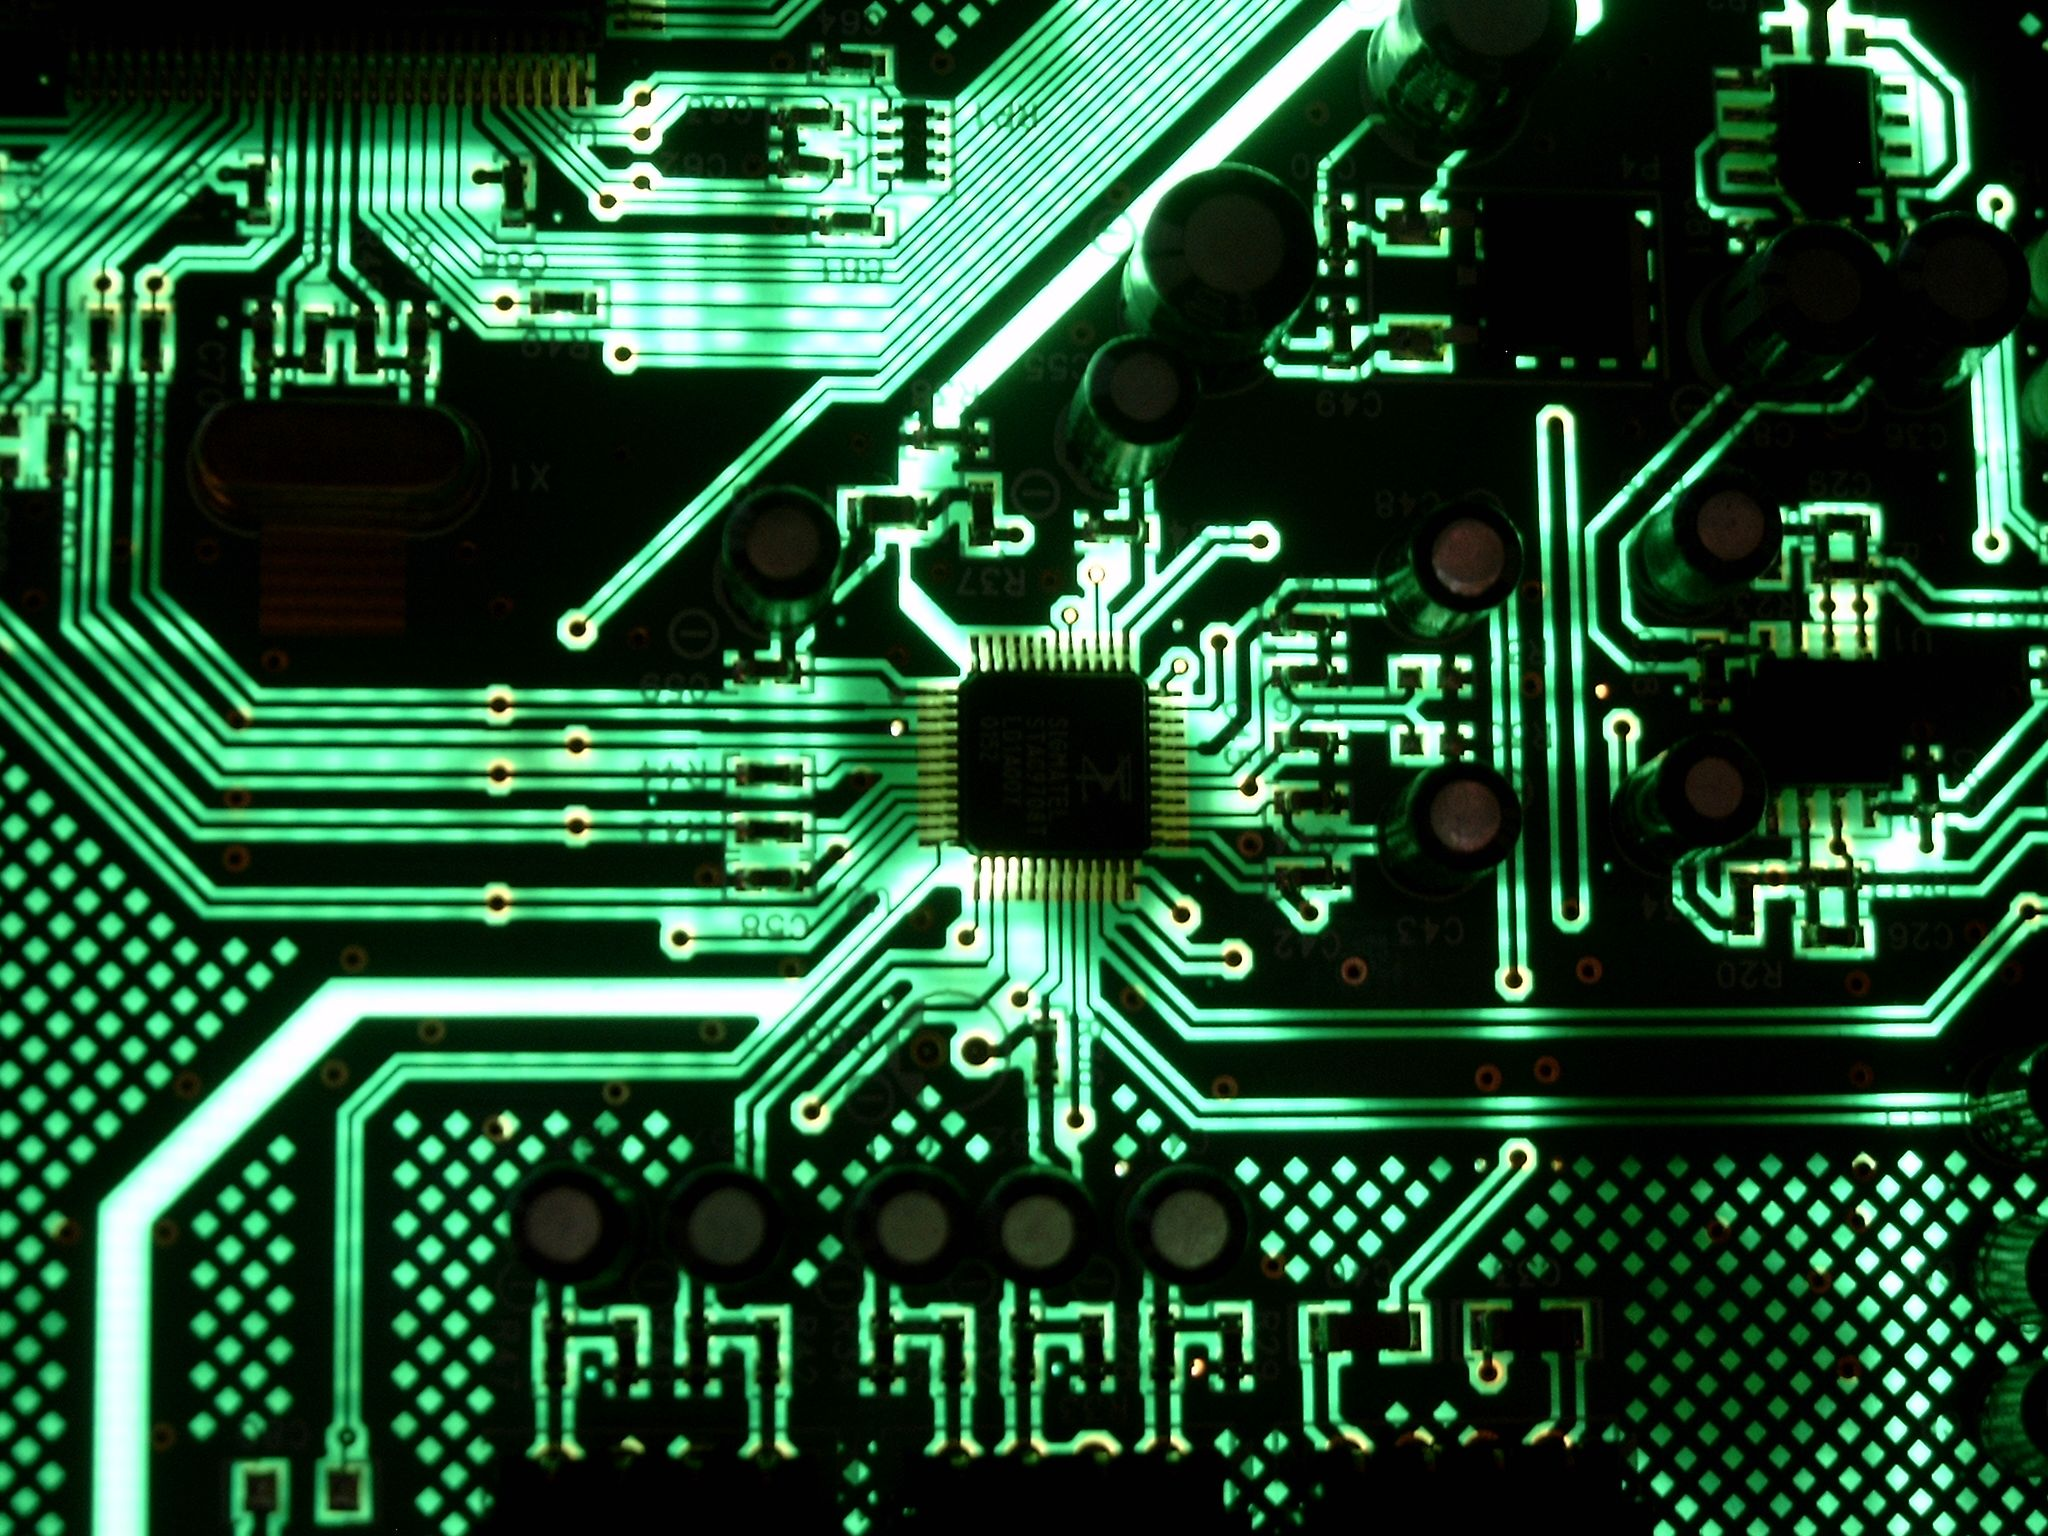 Electrical Engineer Wallpapers High Quality Resolution In 2020 Electronics Wallpaper Electronics Circuit Motherboard